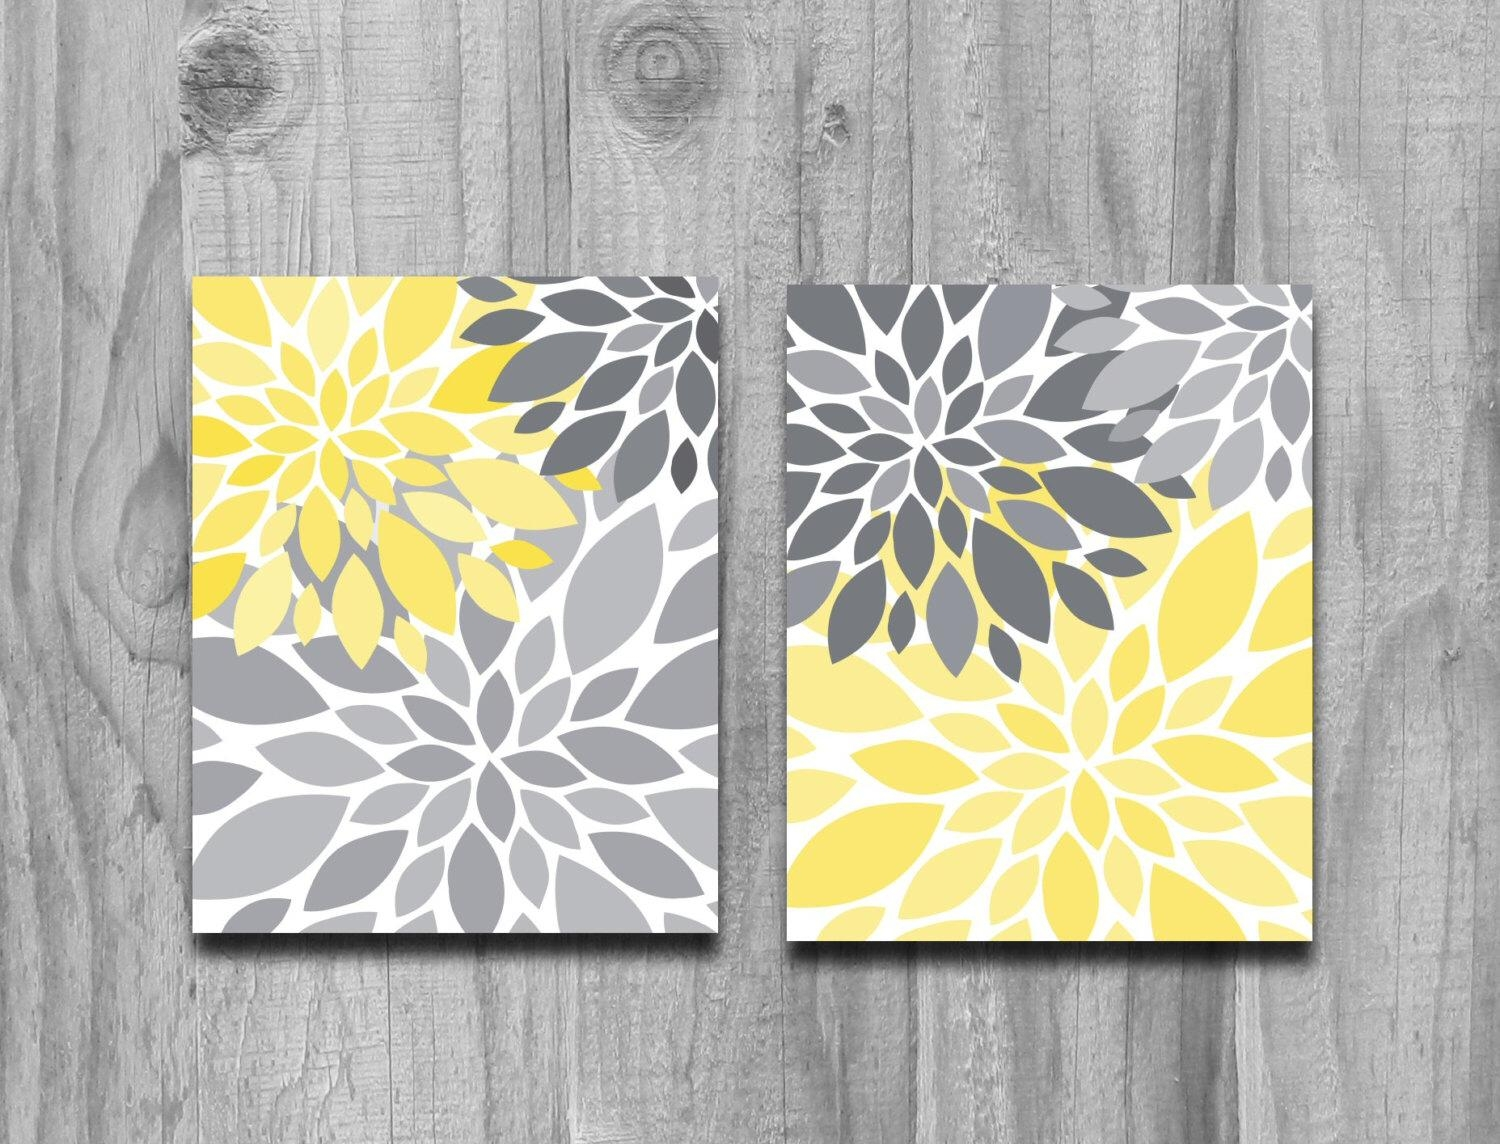 Wall Art: Amazing Grey And Yellow Wall Art Yellow And Gray Framed Inside Yellow And Gray Wall Art (View 7 of 20)